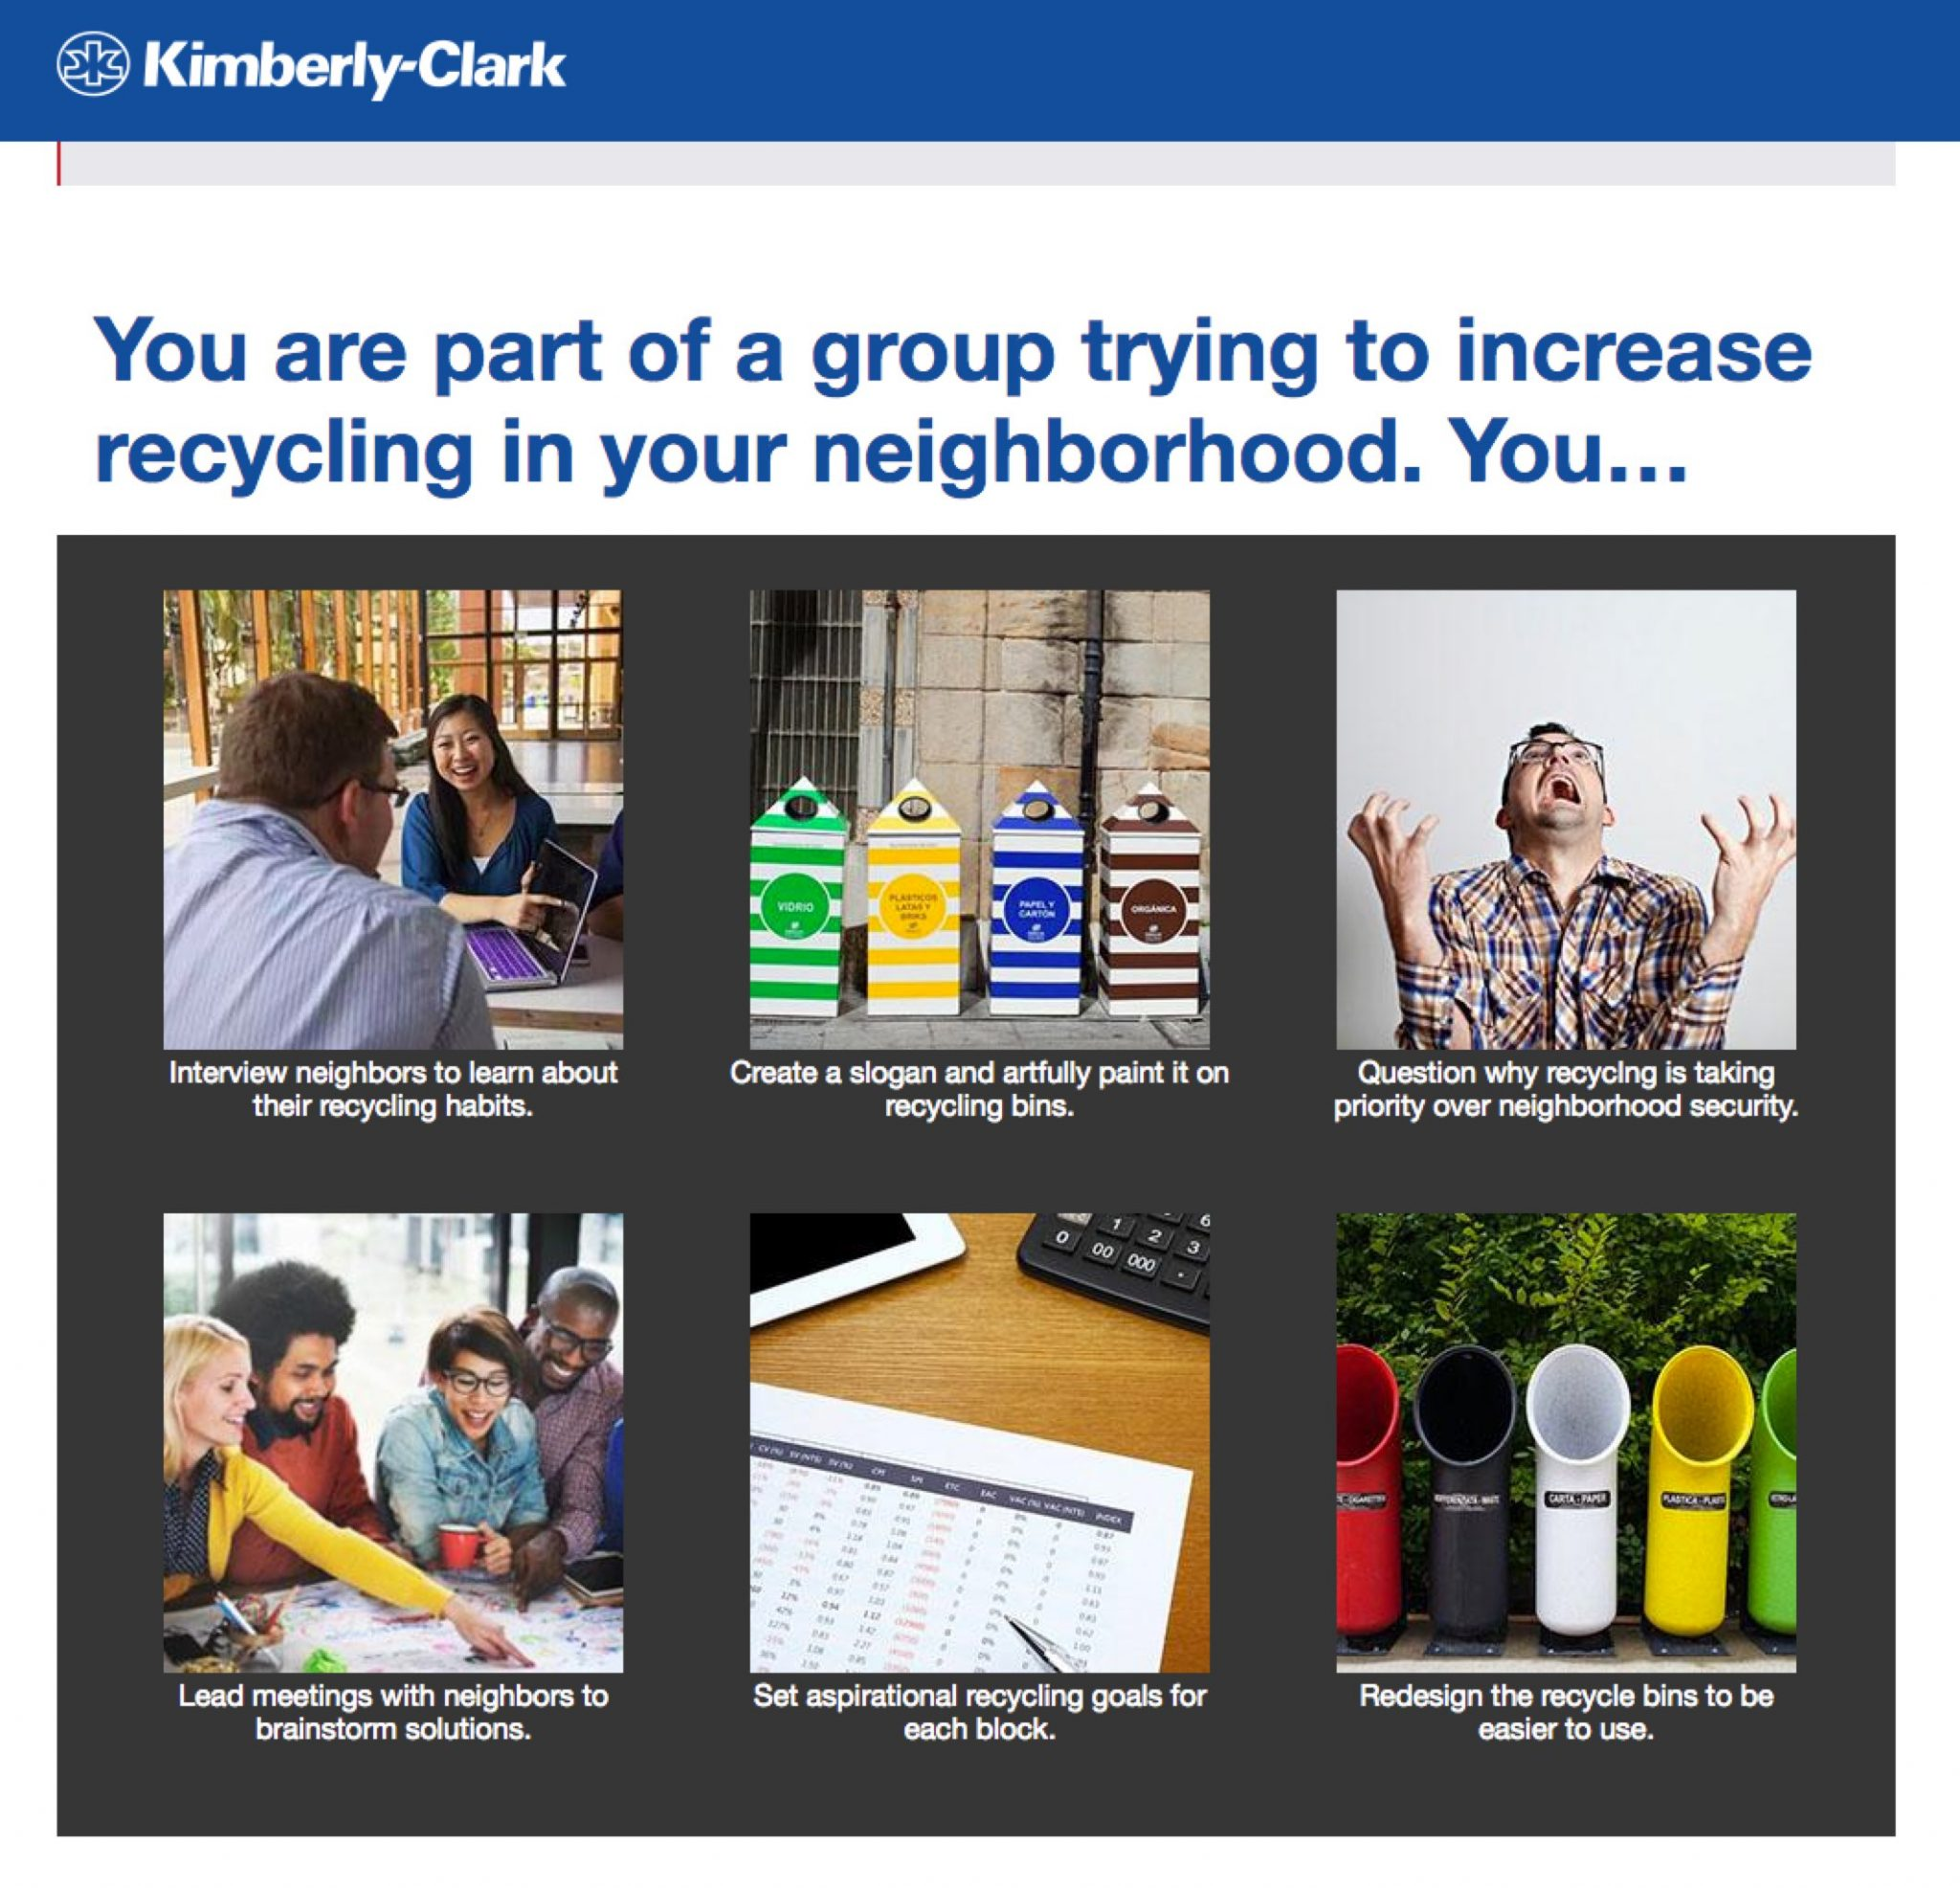 kimberly-clark-recruitment-test-1-ongig-blog